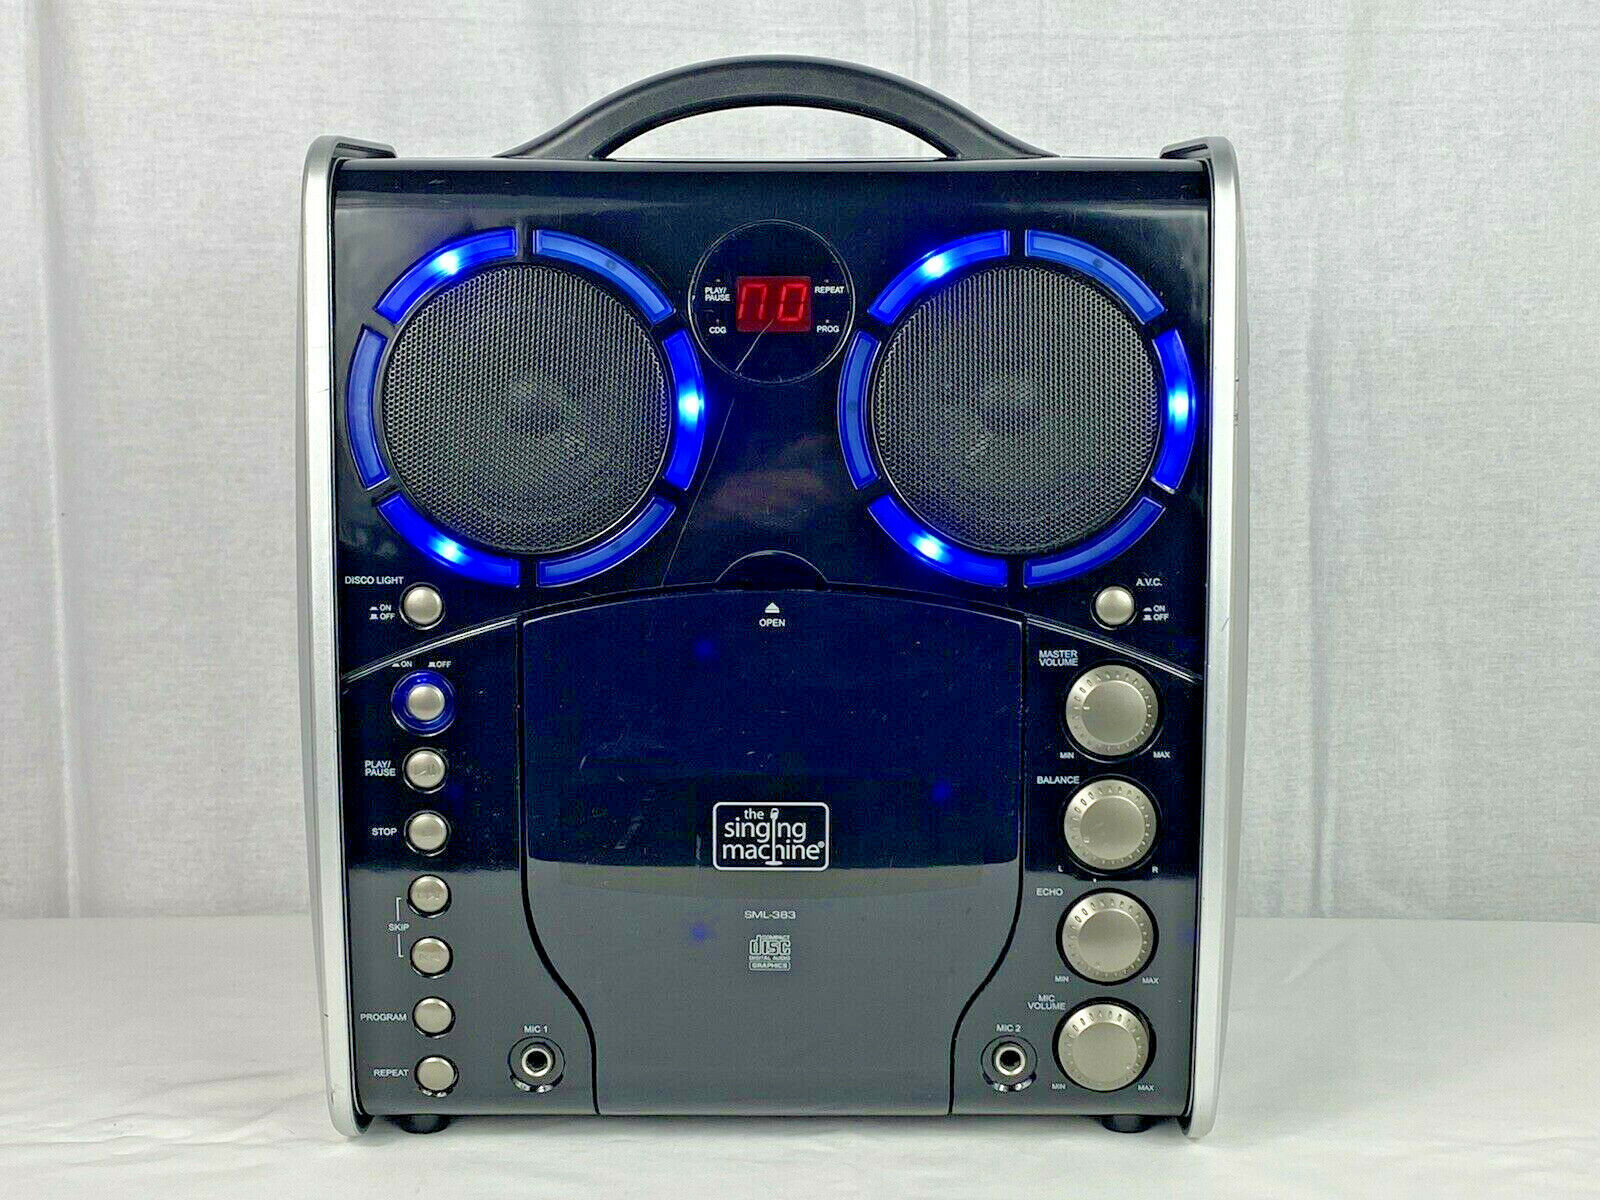 Primary image for The Singing Machine SML-383 Portable Karaoke Speaker Set w/ Disco Lights No Mic